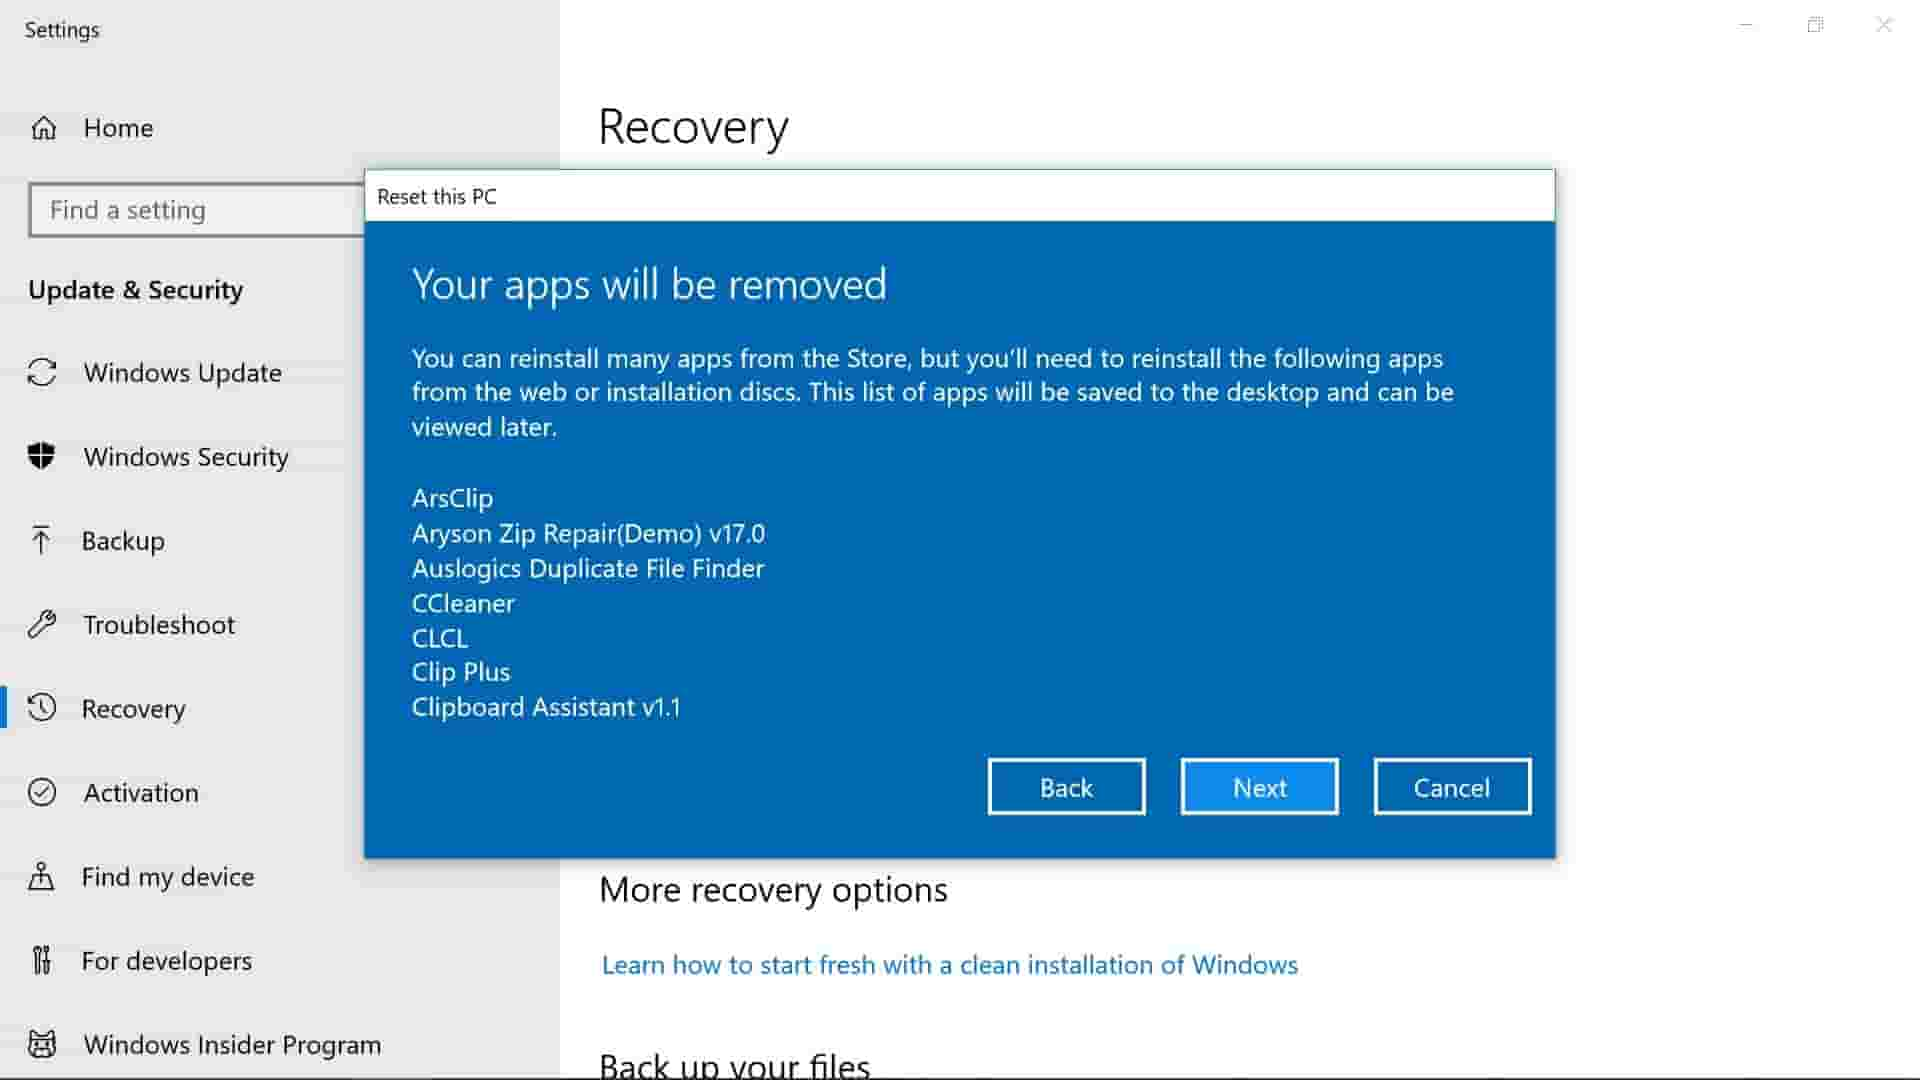 how to refresh windows 10 to default, how to refresh windows 10, windows 10, windows 11, windows 10 recovery, how to recover windows 10, how to refresh windows 10, refresh windows 10 to default